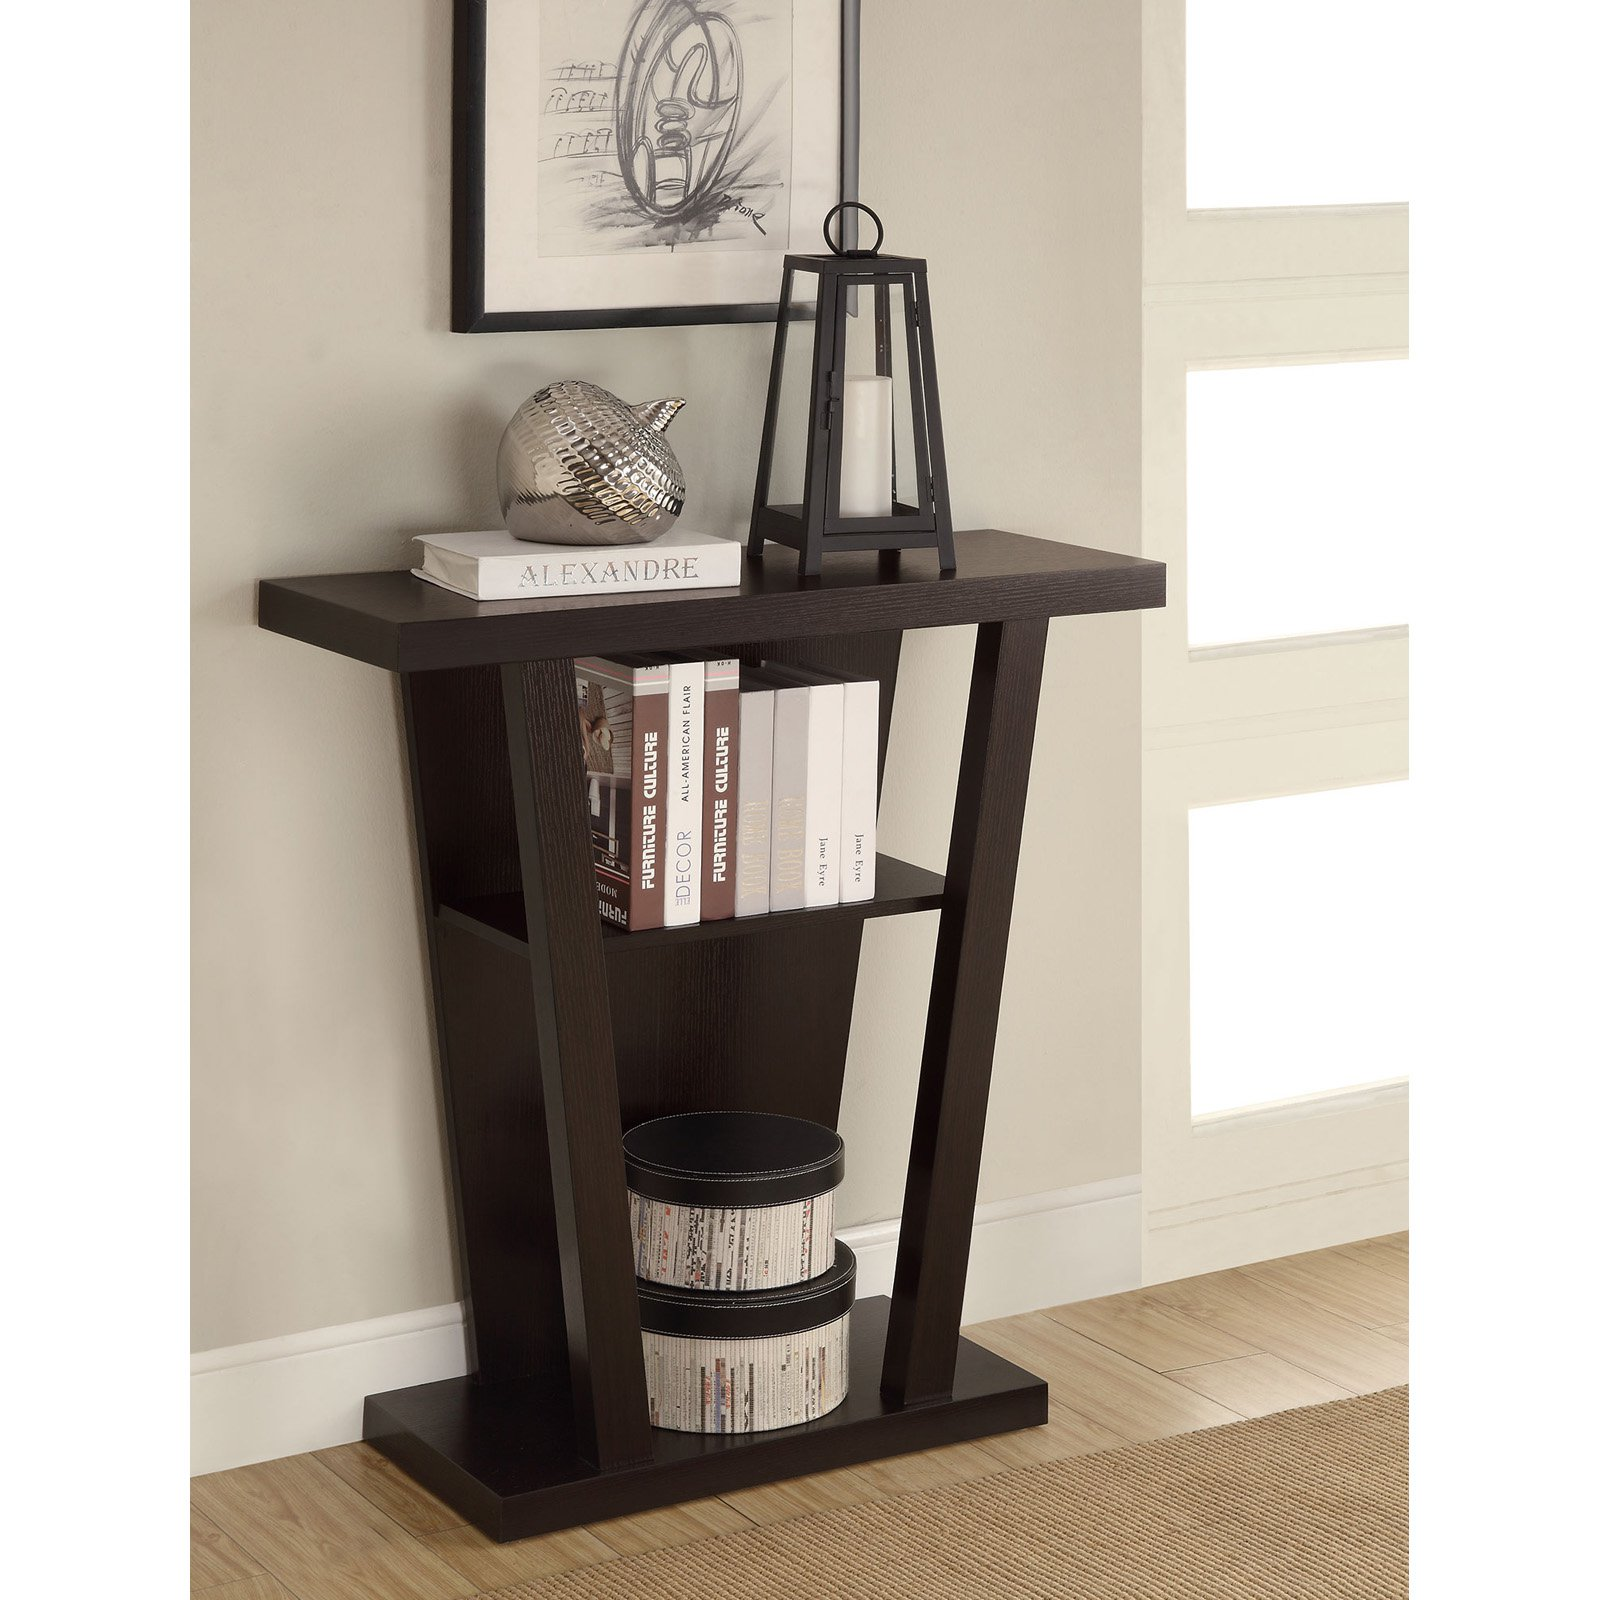 exciting small thin accent table shelf fence bajaj patterns tablet pattern fantastic kitchen backpack chair narrow bedroom bathroo pine saw argos set crochet toddlers fan runner